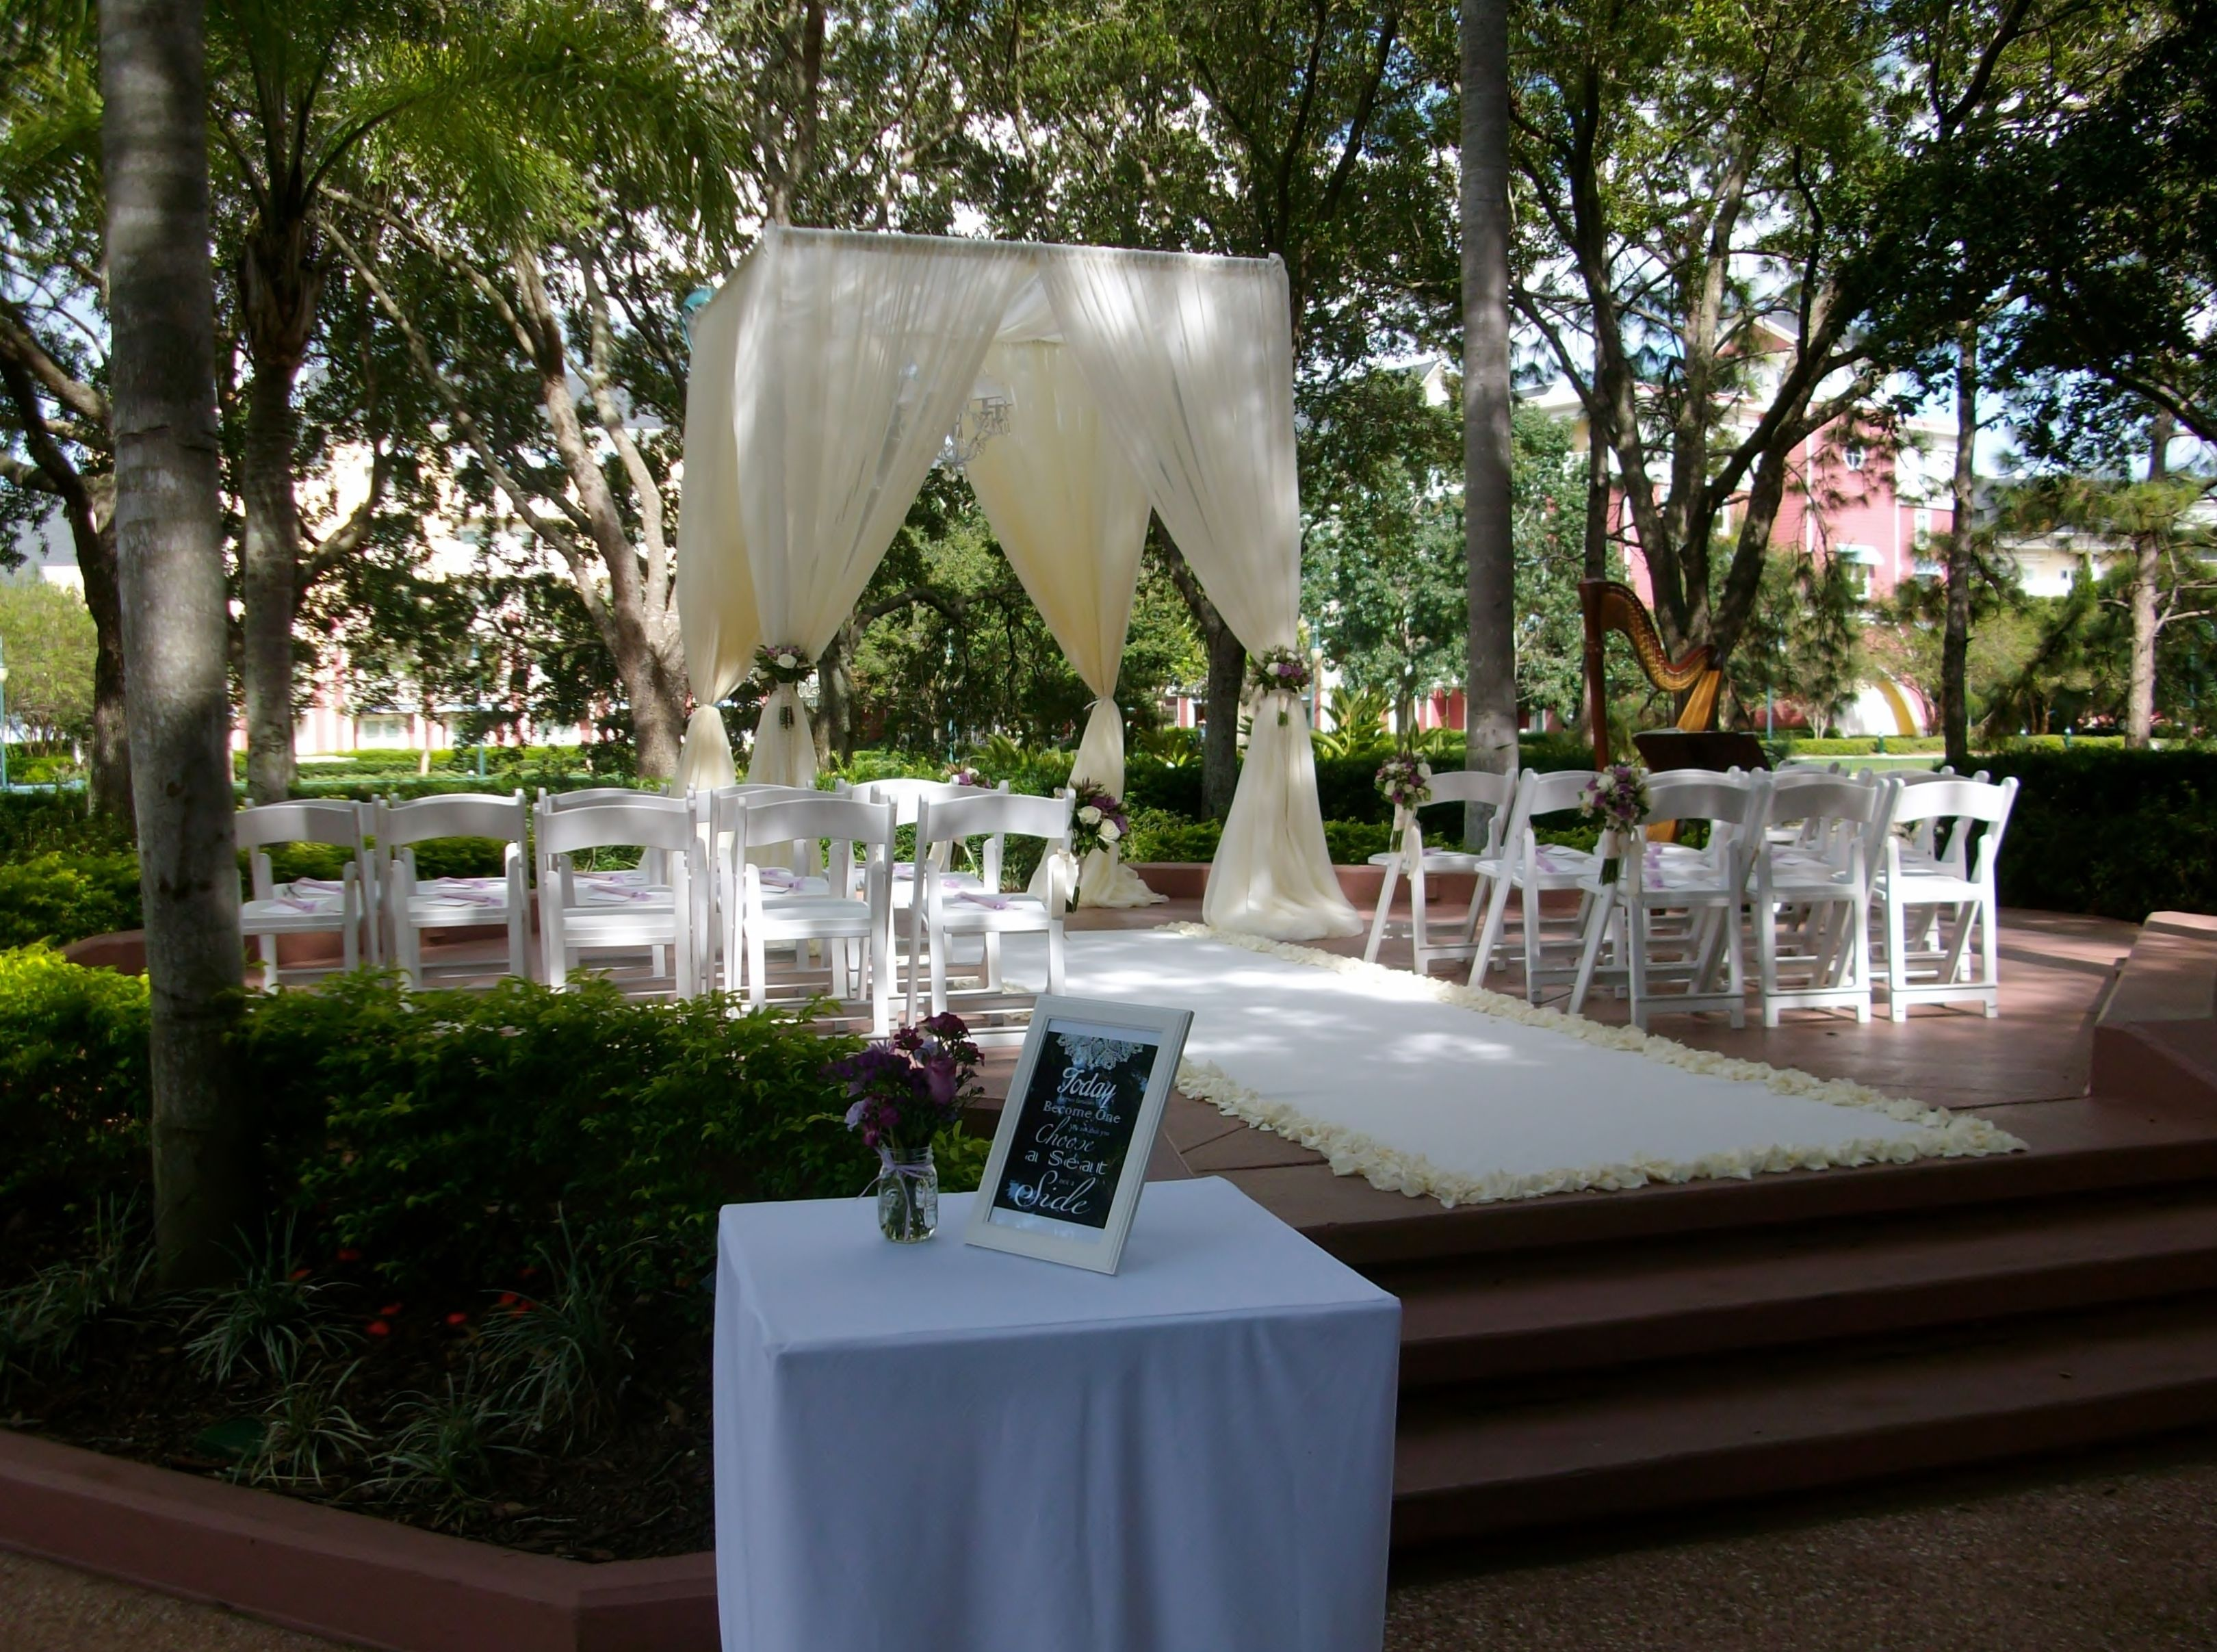 Beautiful Weddings: Disney World Swan Hotel Wedding Ceremony At The Crescent